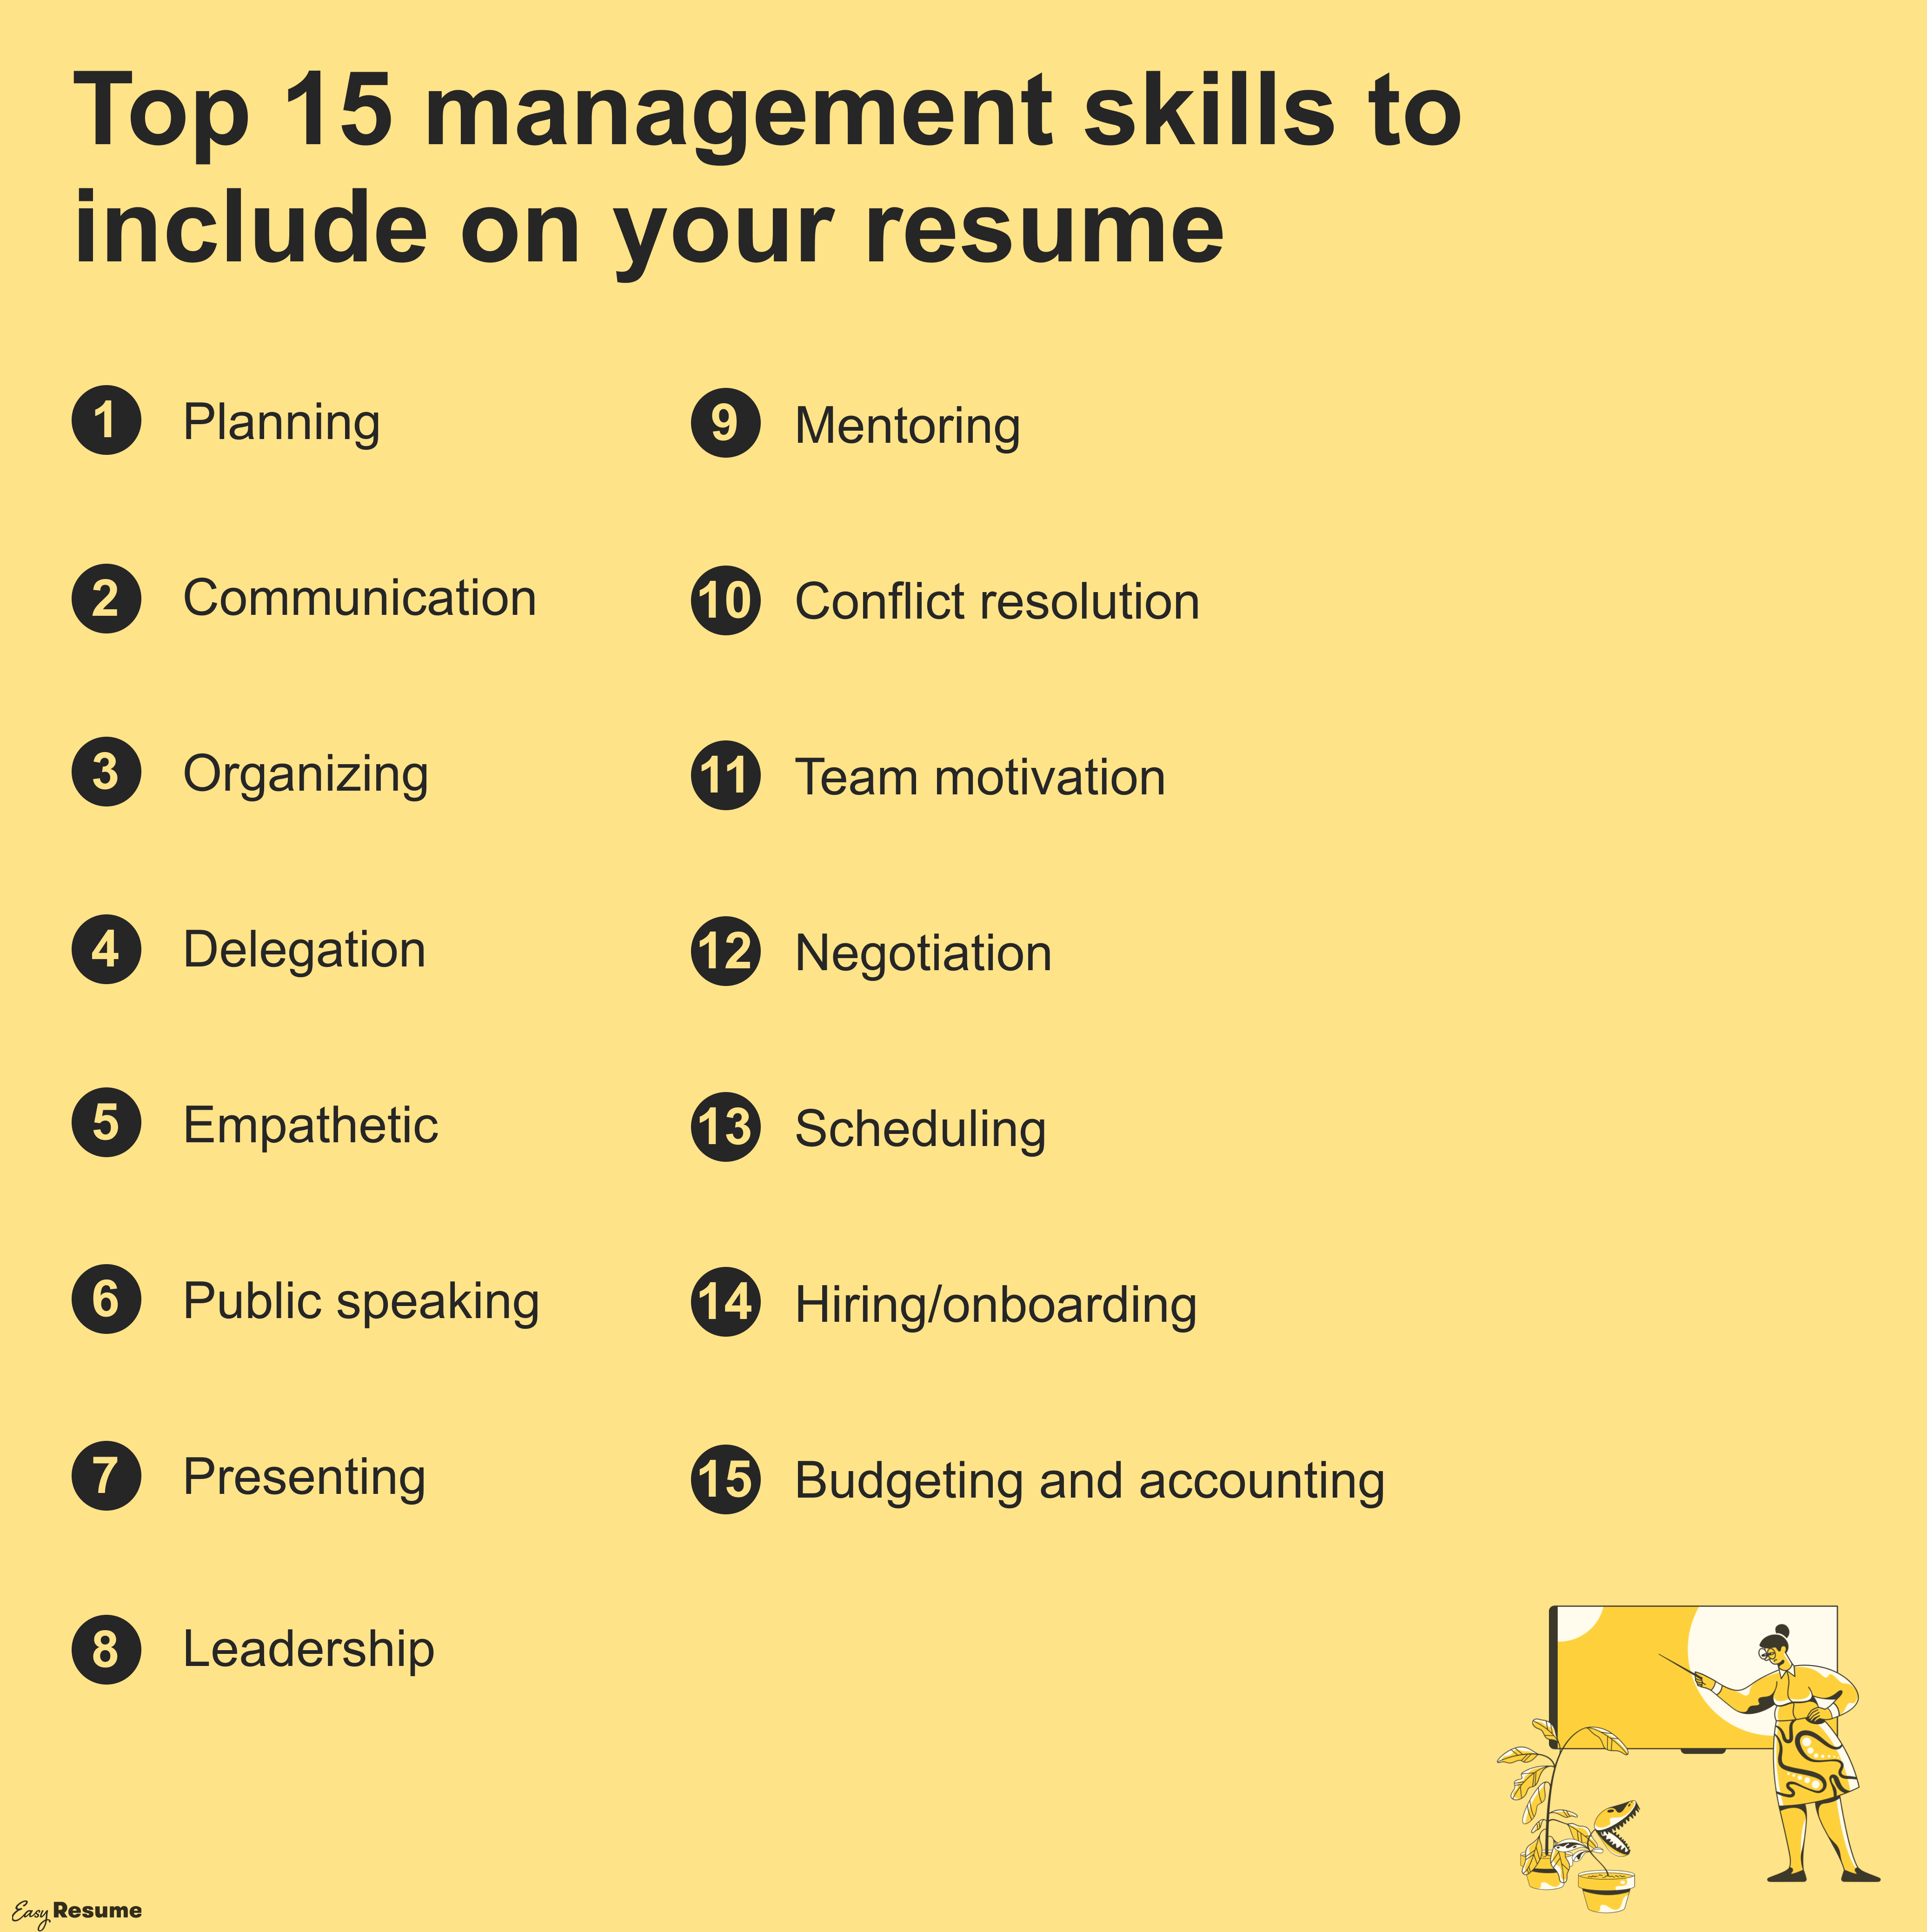 Top management skills to include on your resume